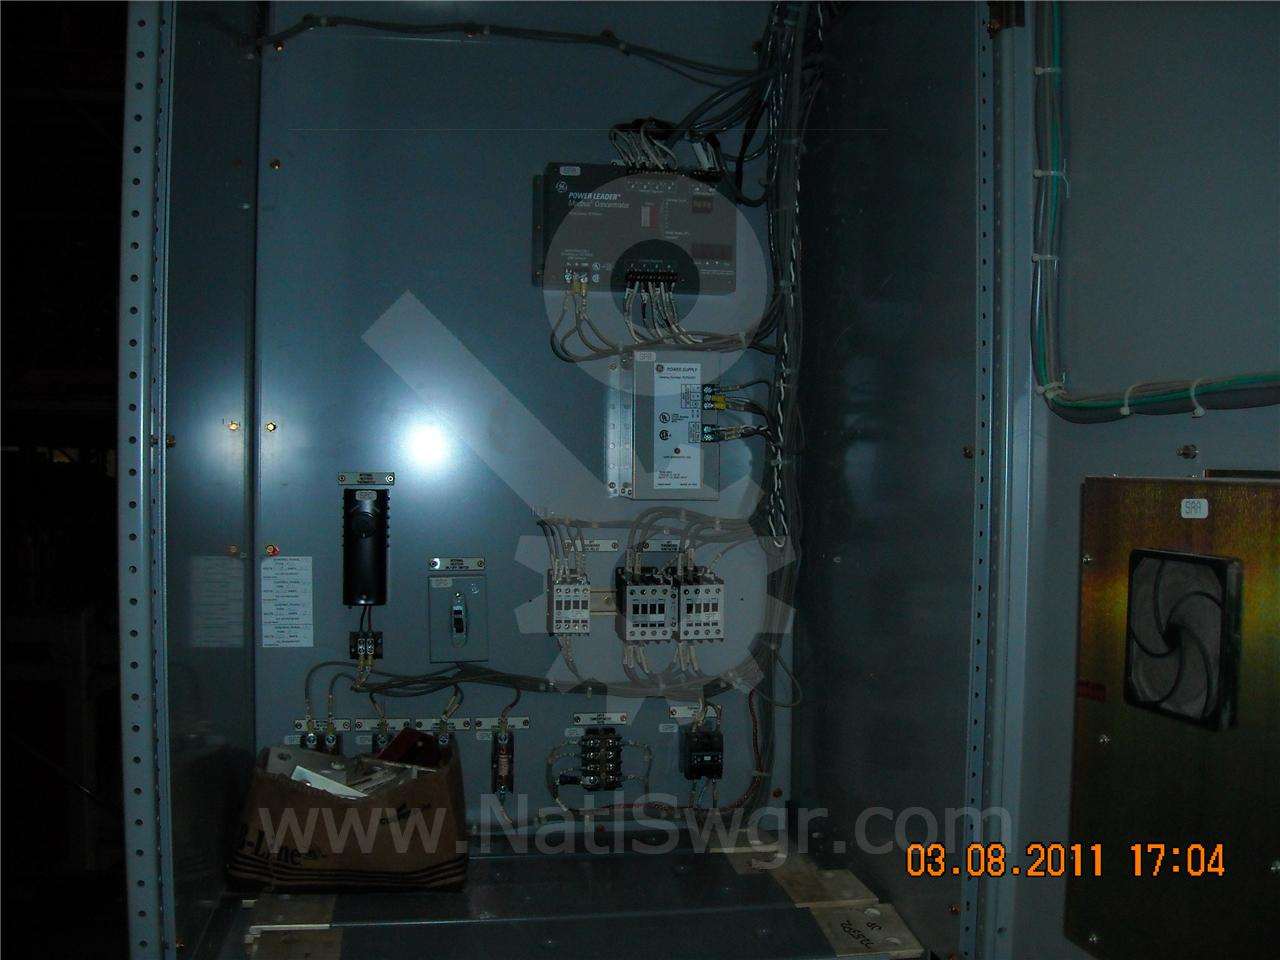 AKD-8 4000A GE / General Electric AKD-8 INDOOR SWITCHGEAR 1-4000A TIE